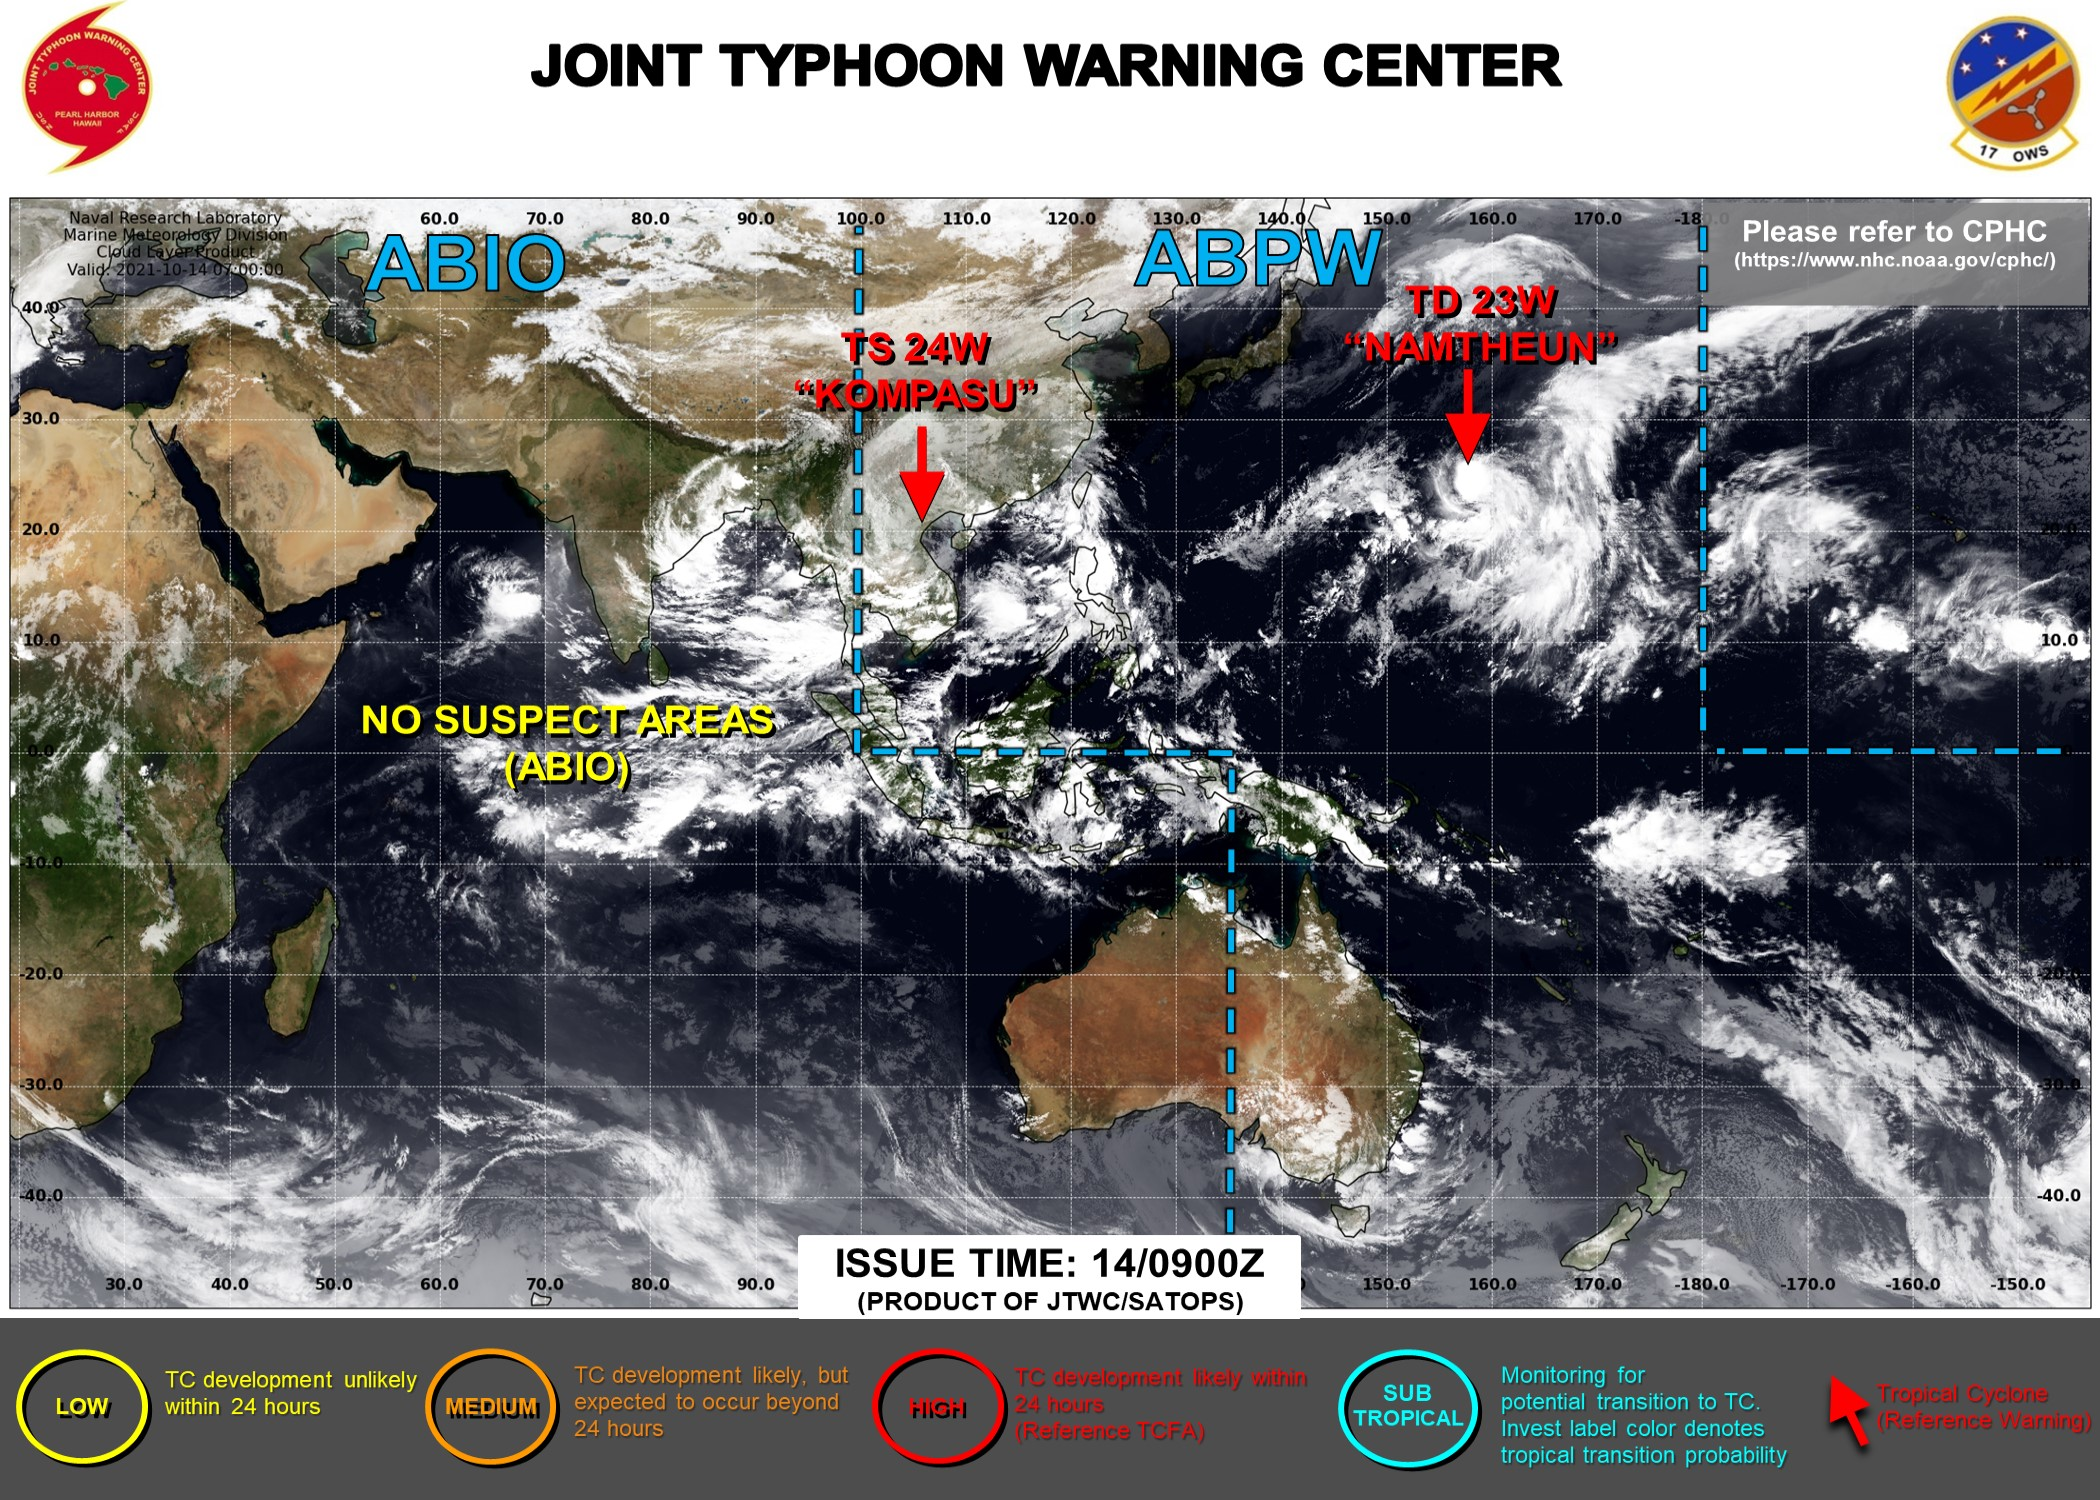 JTWC IS ISSUING 6HOURLY WARNINGS ON TD 23W. FINAL WARNING ON TD 24W WAS ISSUED AT 14/09UTC. 3 HOURLY SATELLITE BULLETINS ARE ISSUED ON BOTH SYSTEMS.